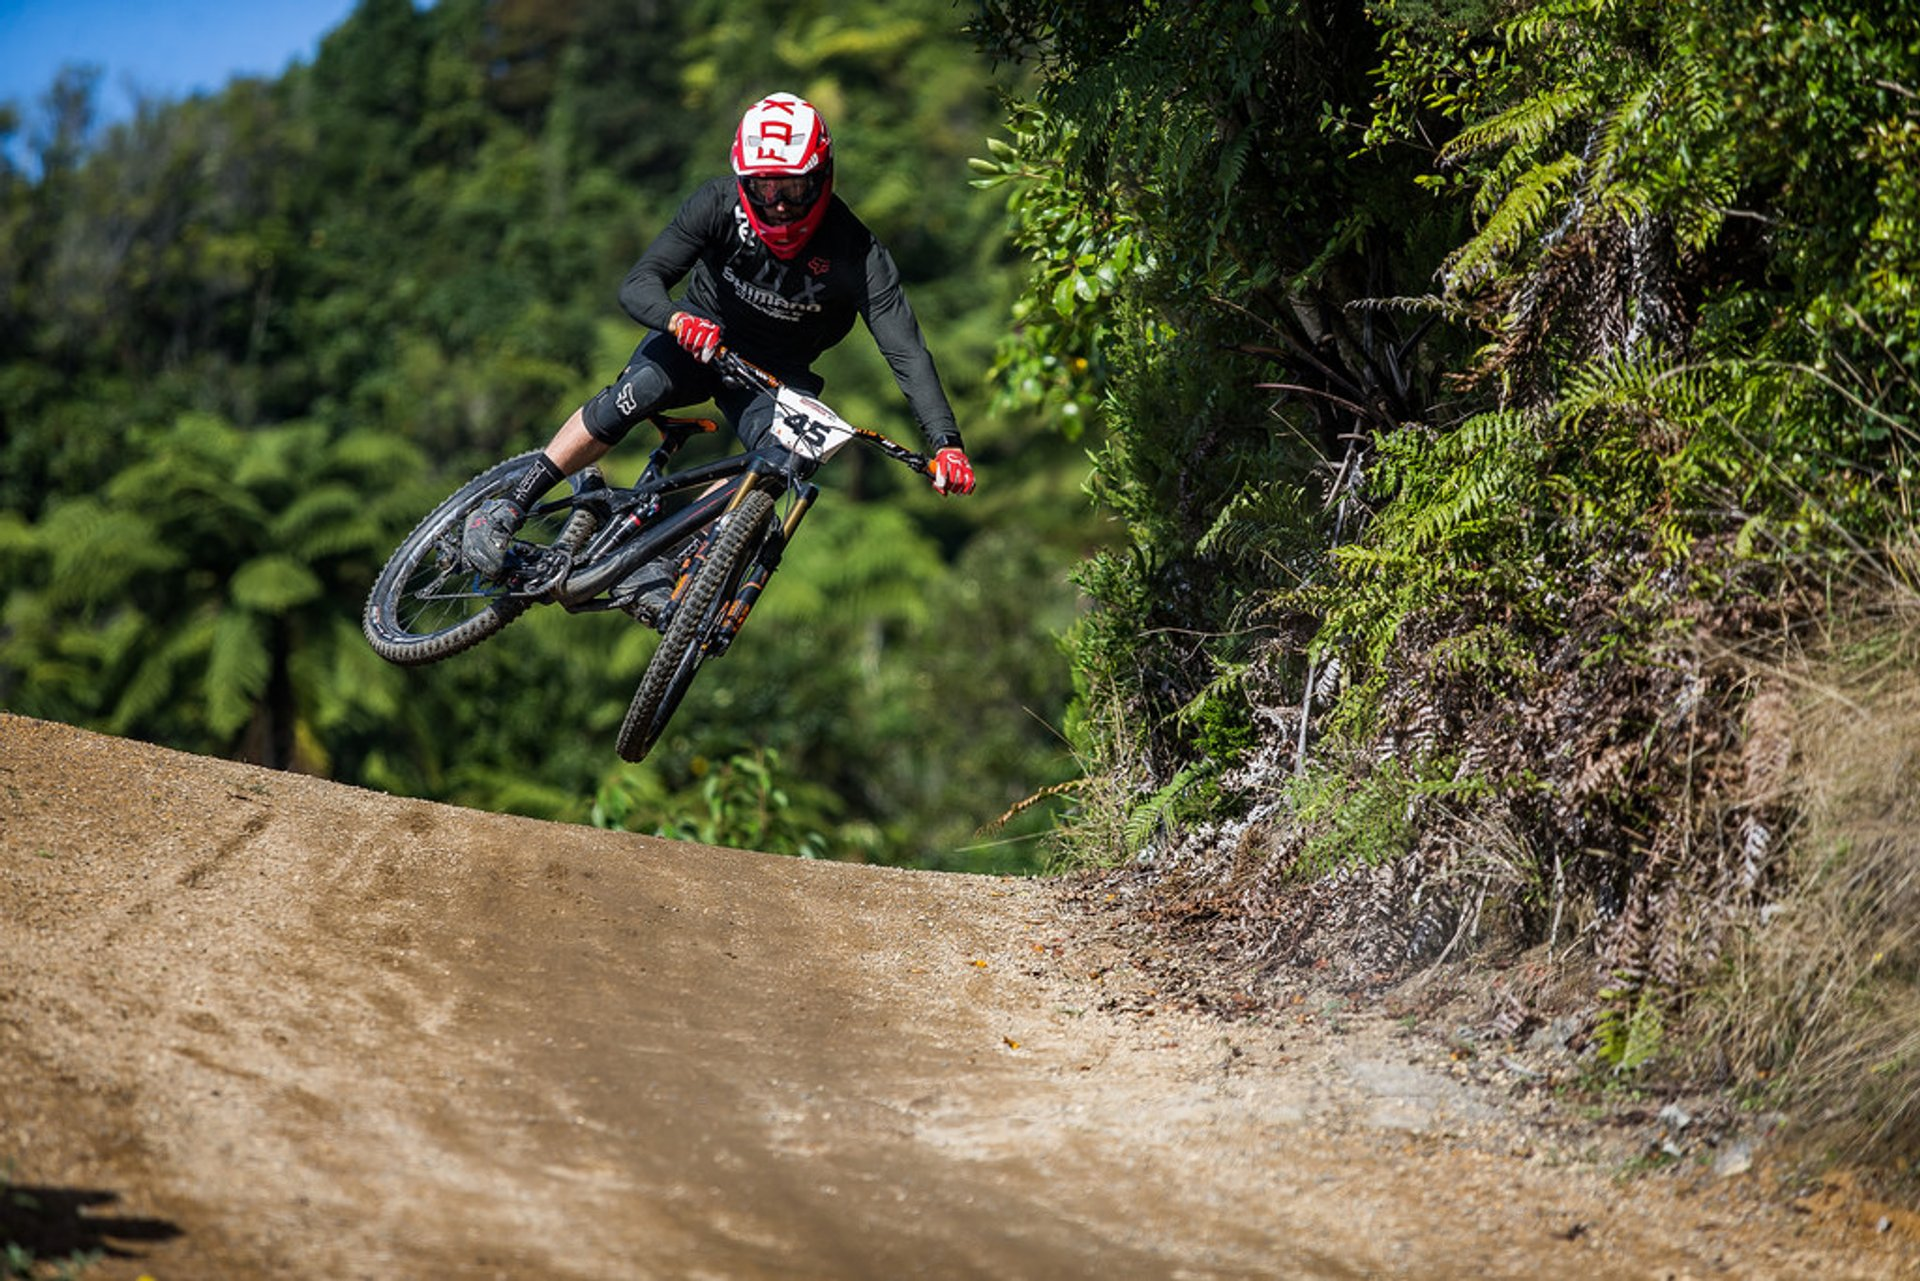 Action from the Crankworx Air Downhill 2020